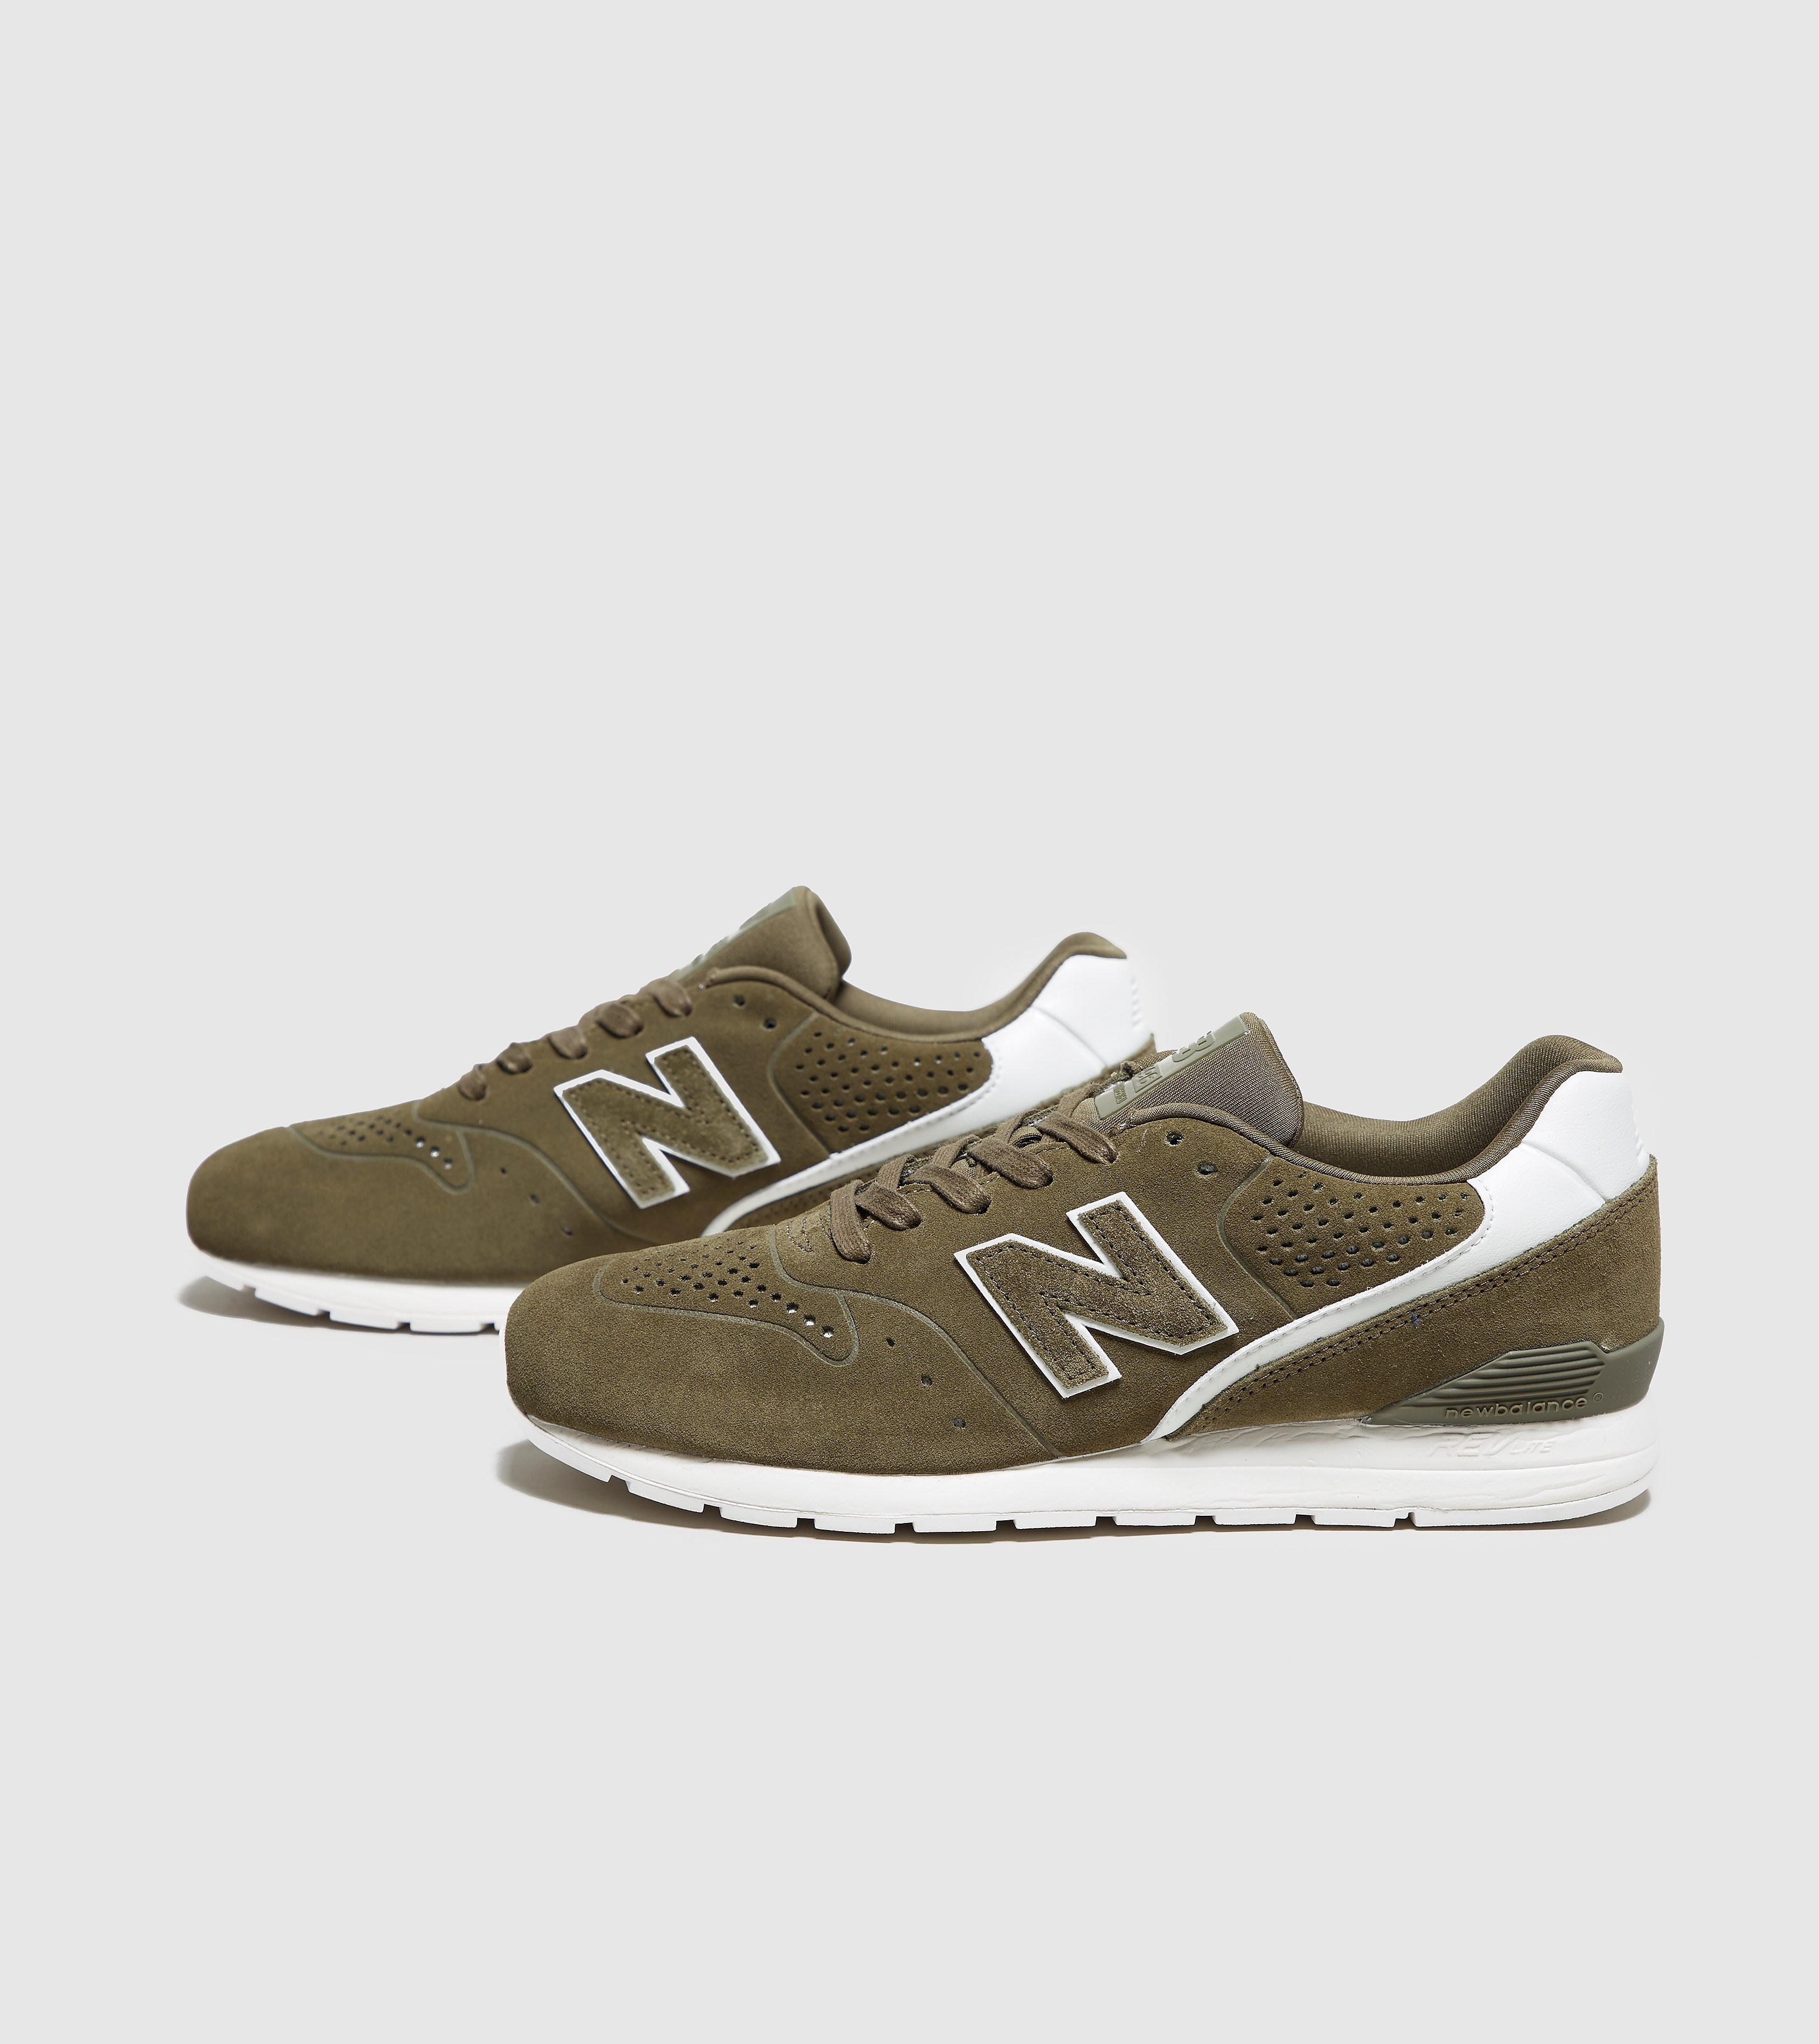 New Balance 996 Perforated